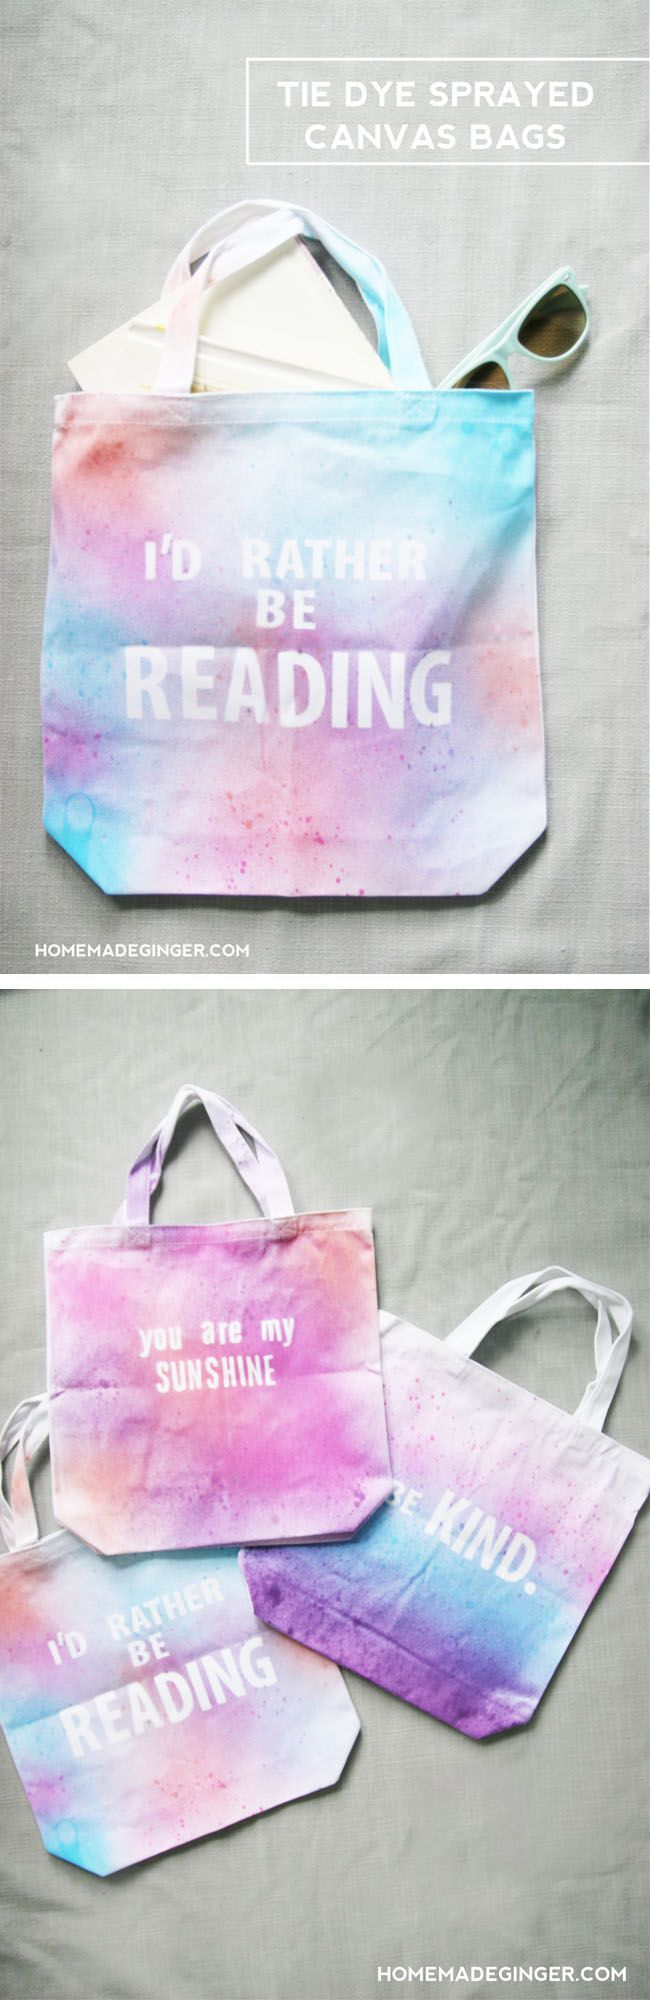 Make some tie dye sprayed canvas bags to say any word or phrase that you want! They are so easy and mess free! #tiedyeyoursummer /ilovetocreate/